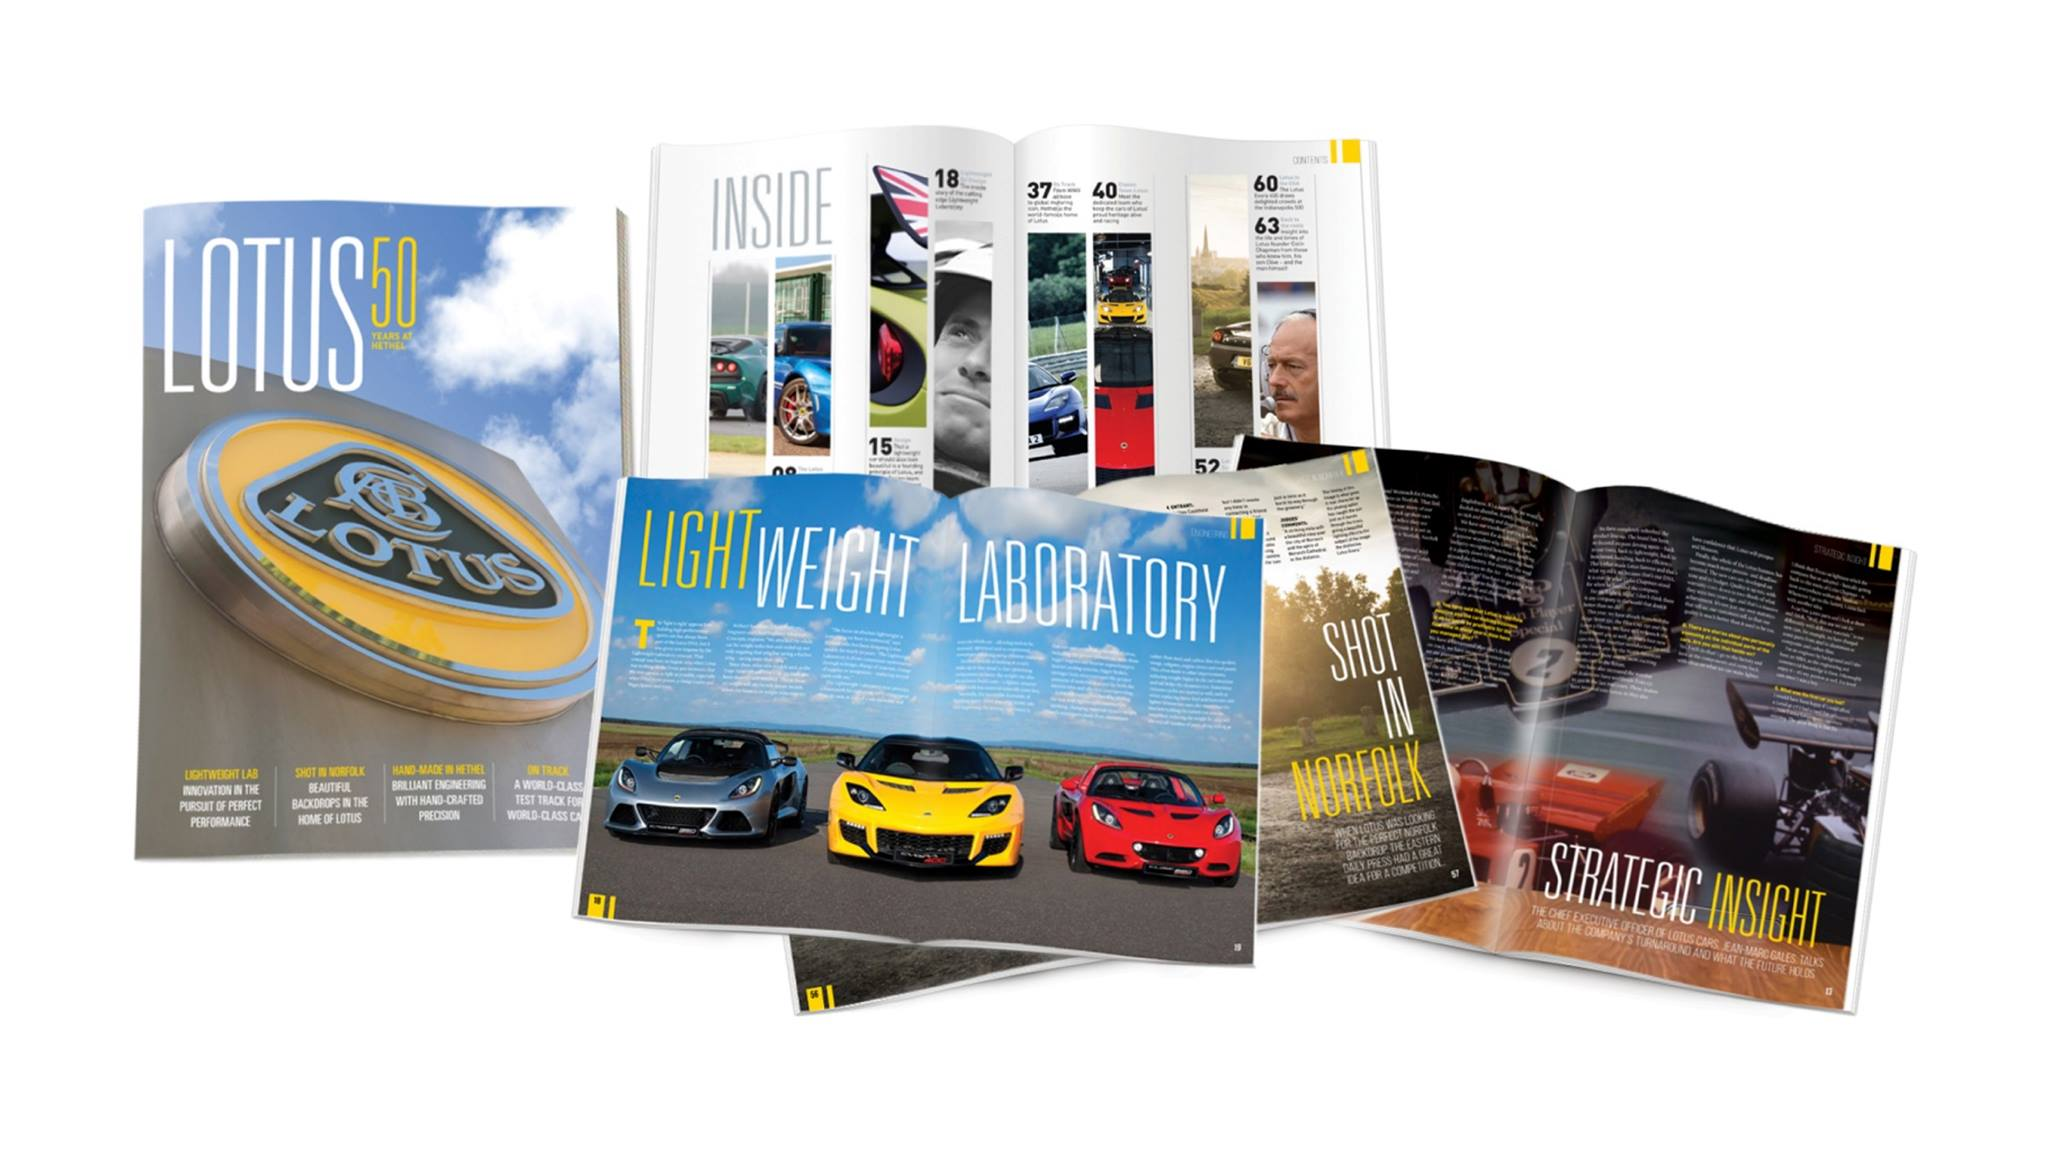 To celebrate 50 years at Hethel, claim your own limited edition magazine to take a look behind the scenes.  E-mail - Lotus50th@lotuscars.com https://t.co/ojgqJVuDh3